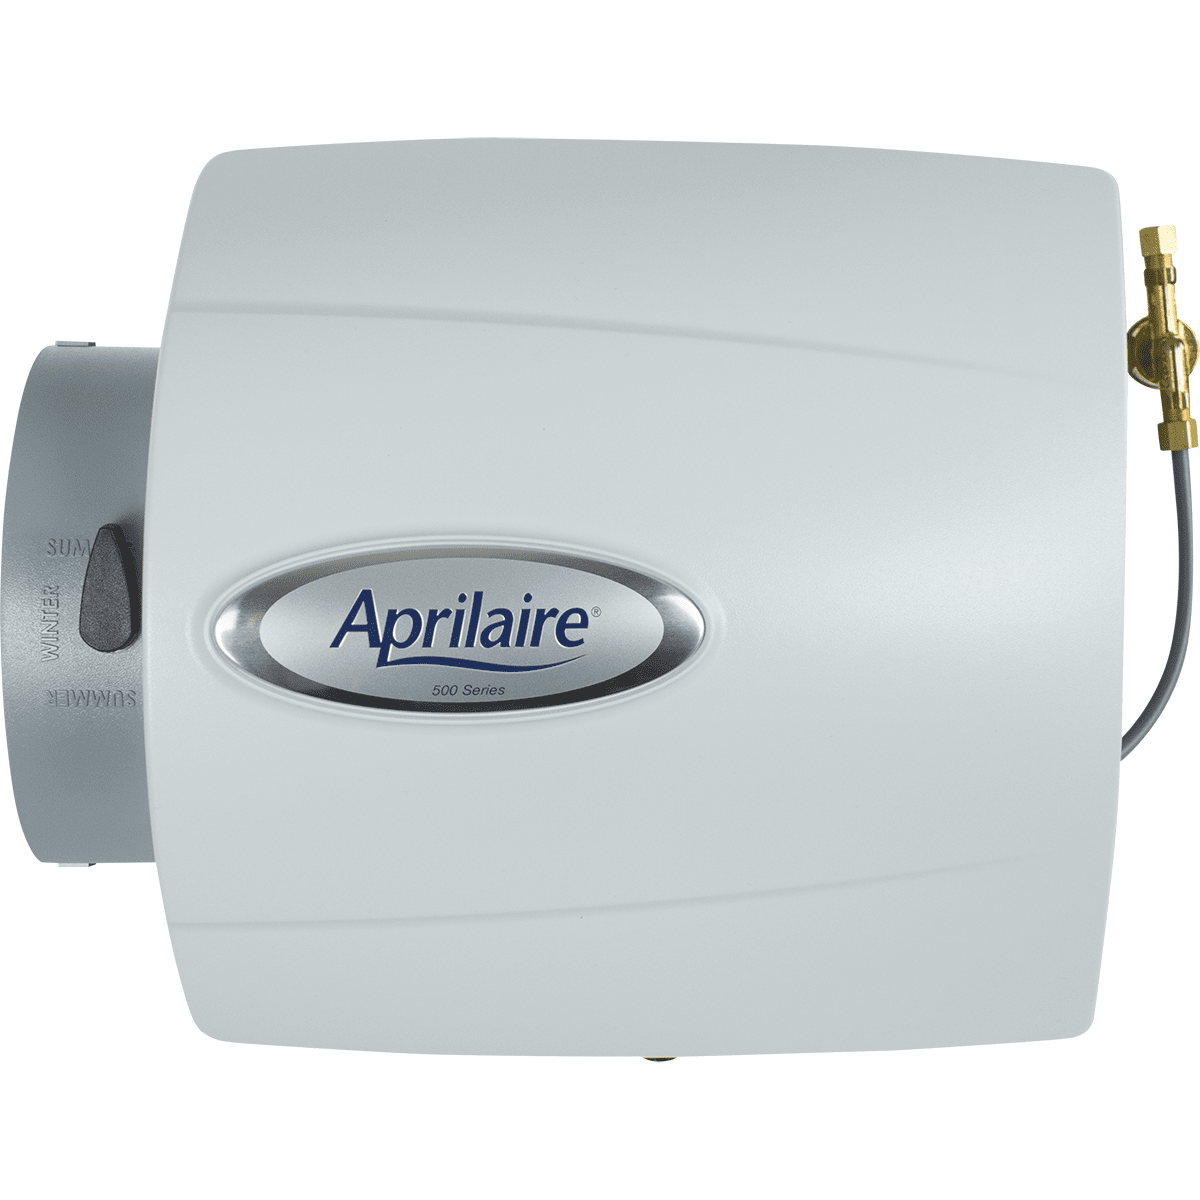 Aprilaire Model 500 Small Whole House Humidifiers